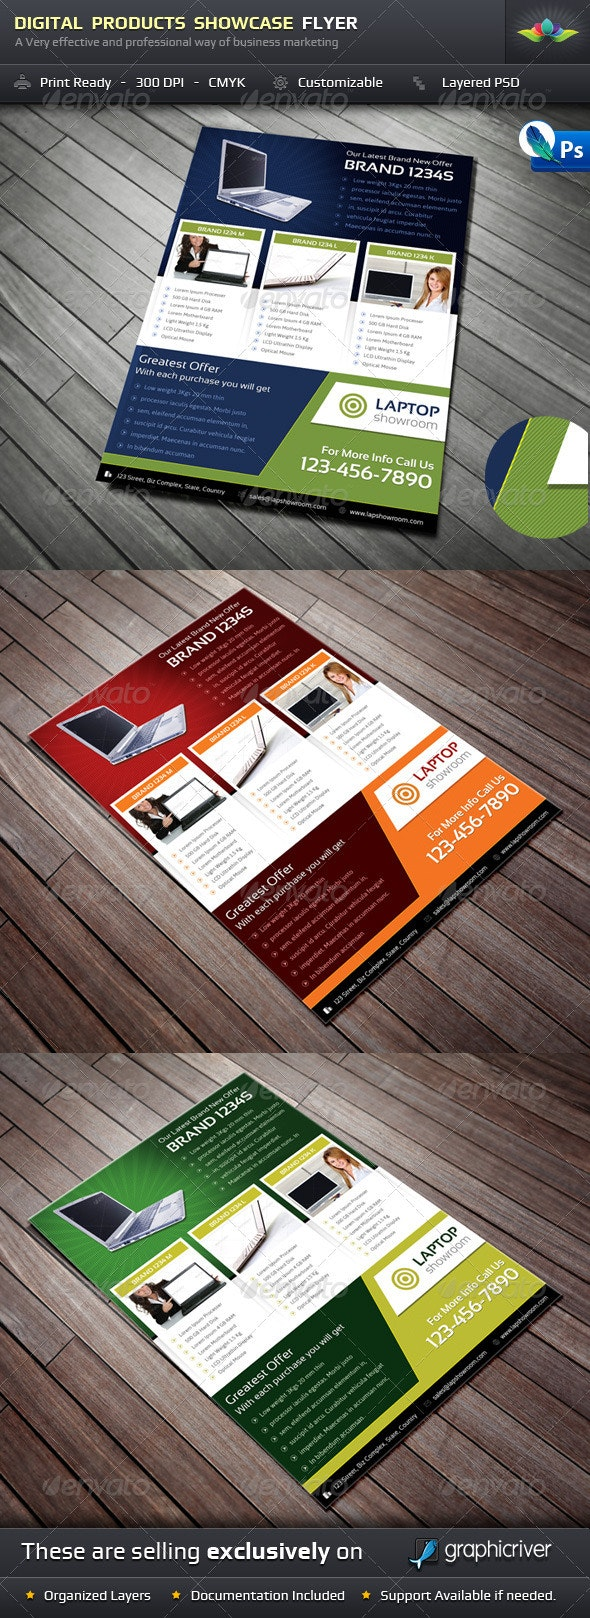 Digital Product Showcase Flyer - Corporate Flyers